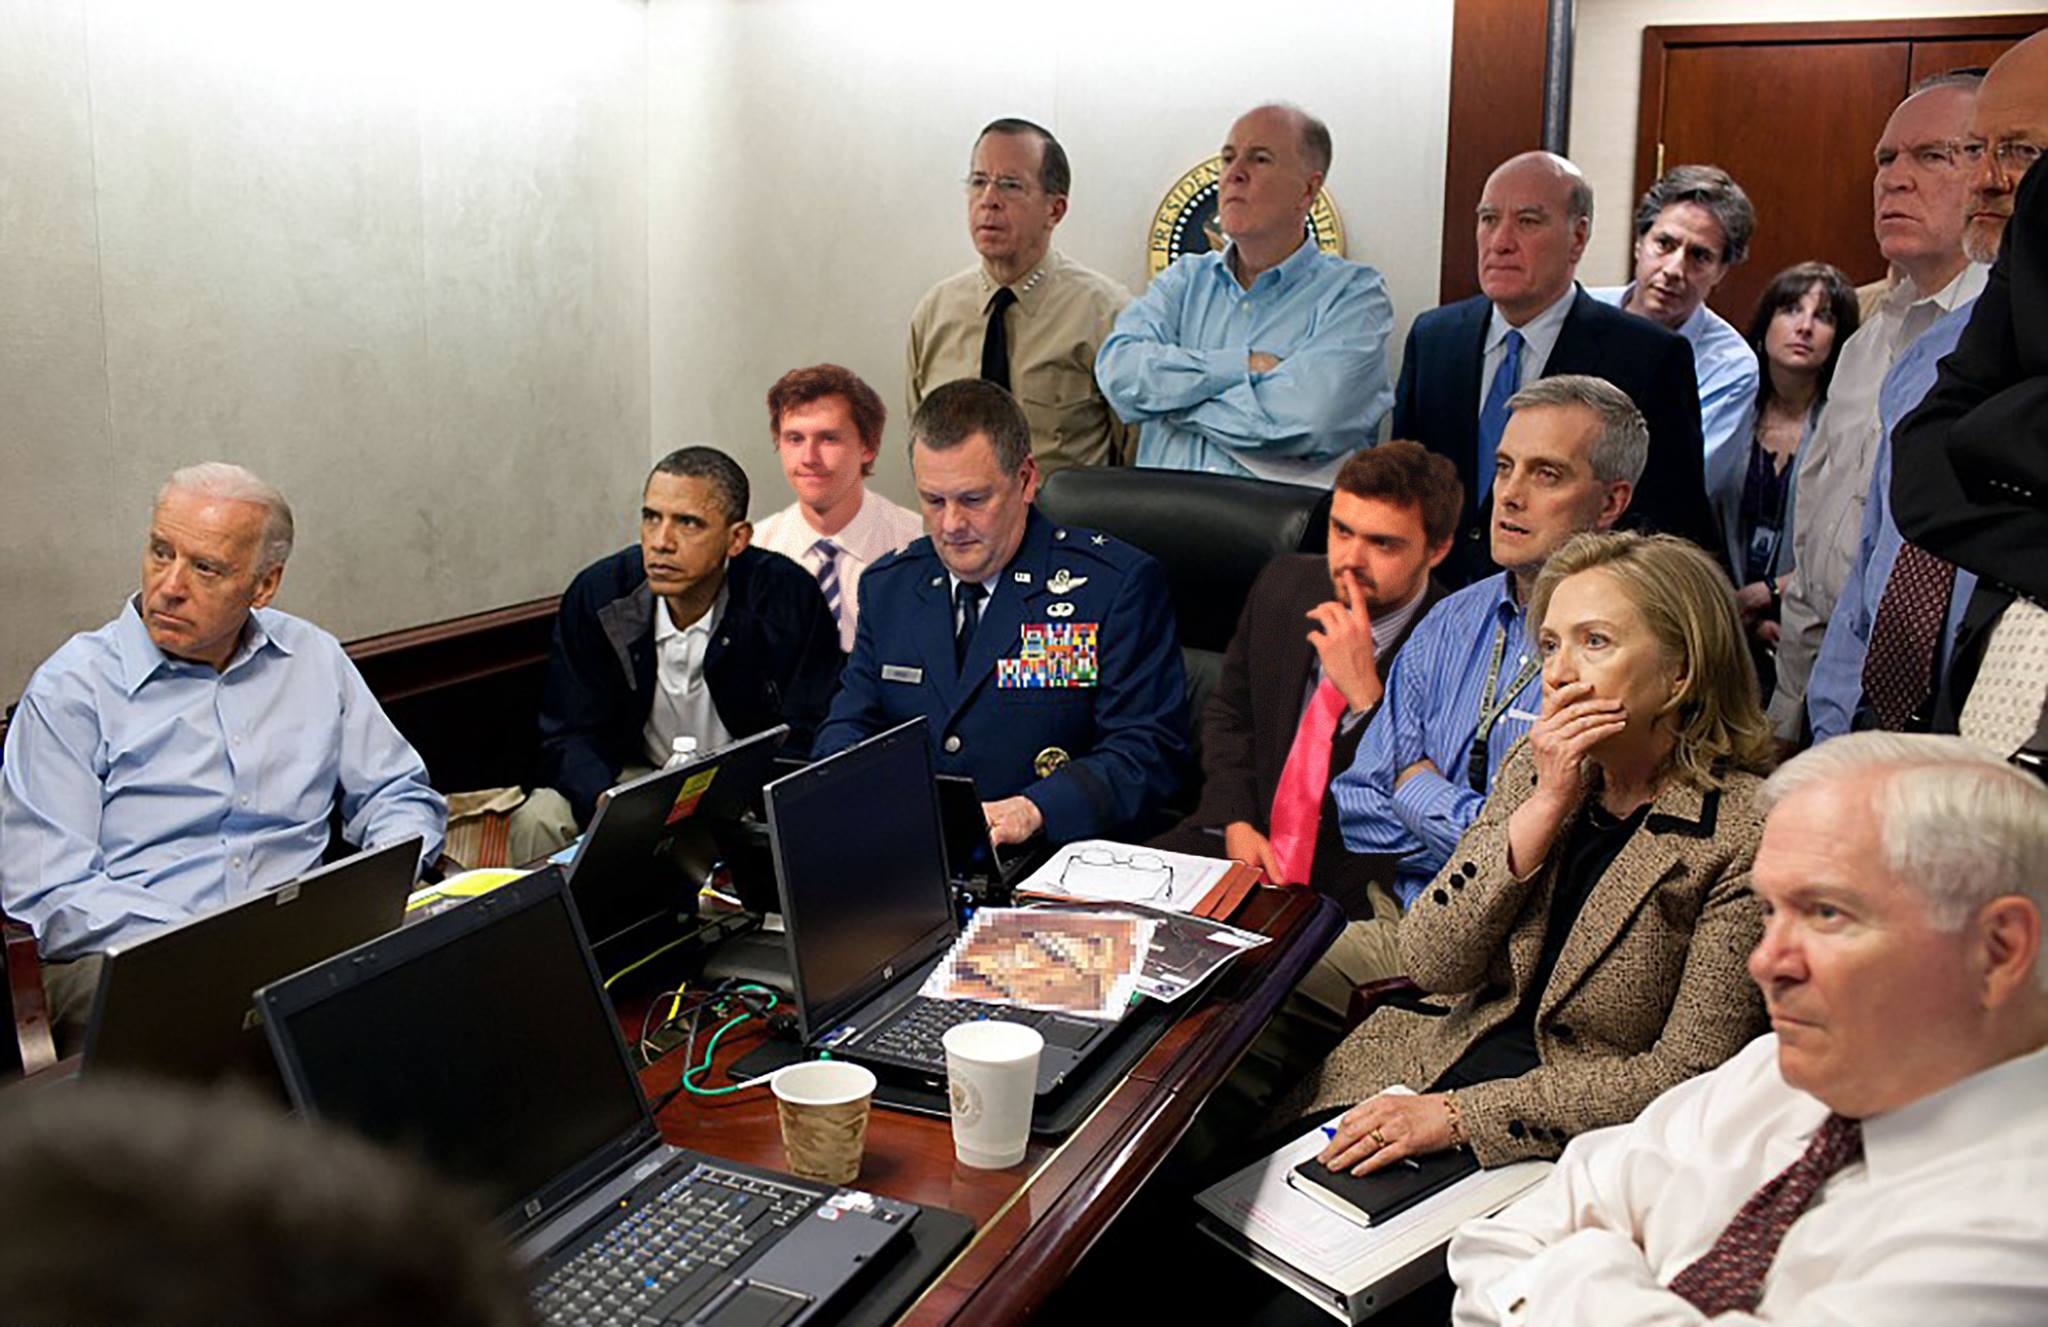 situation room chak norris